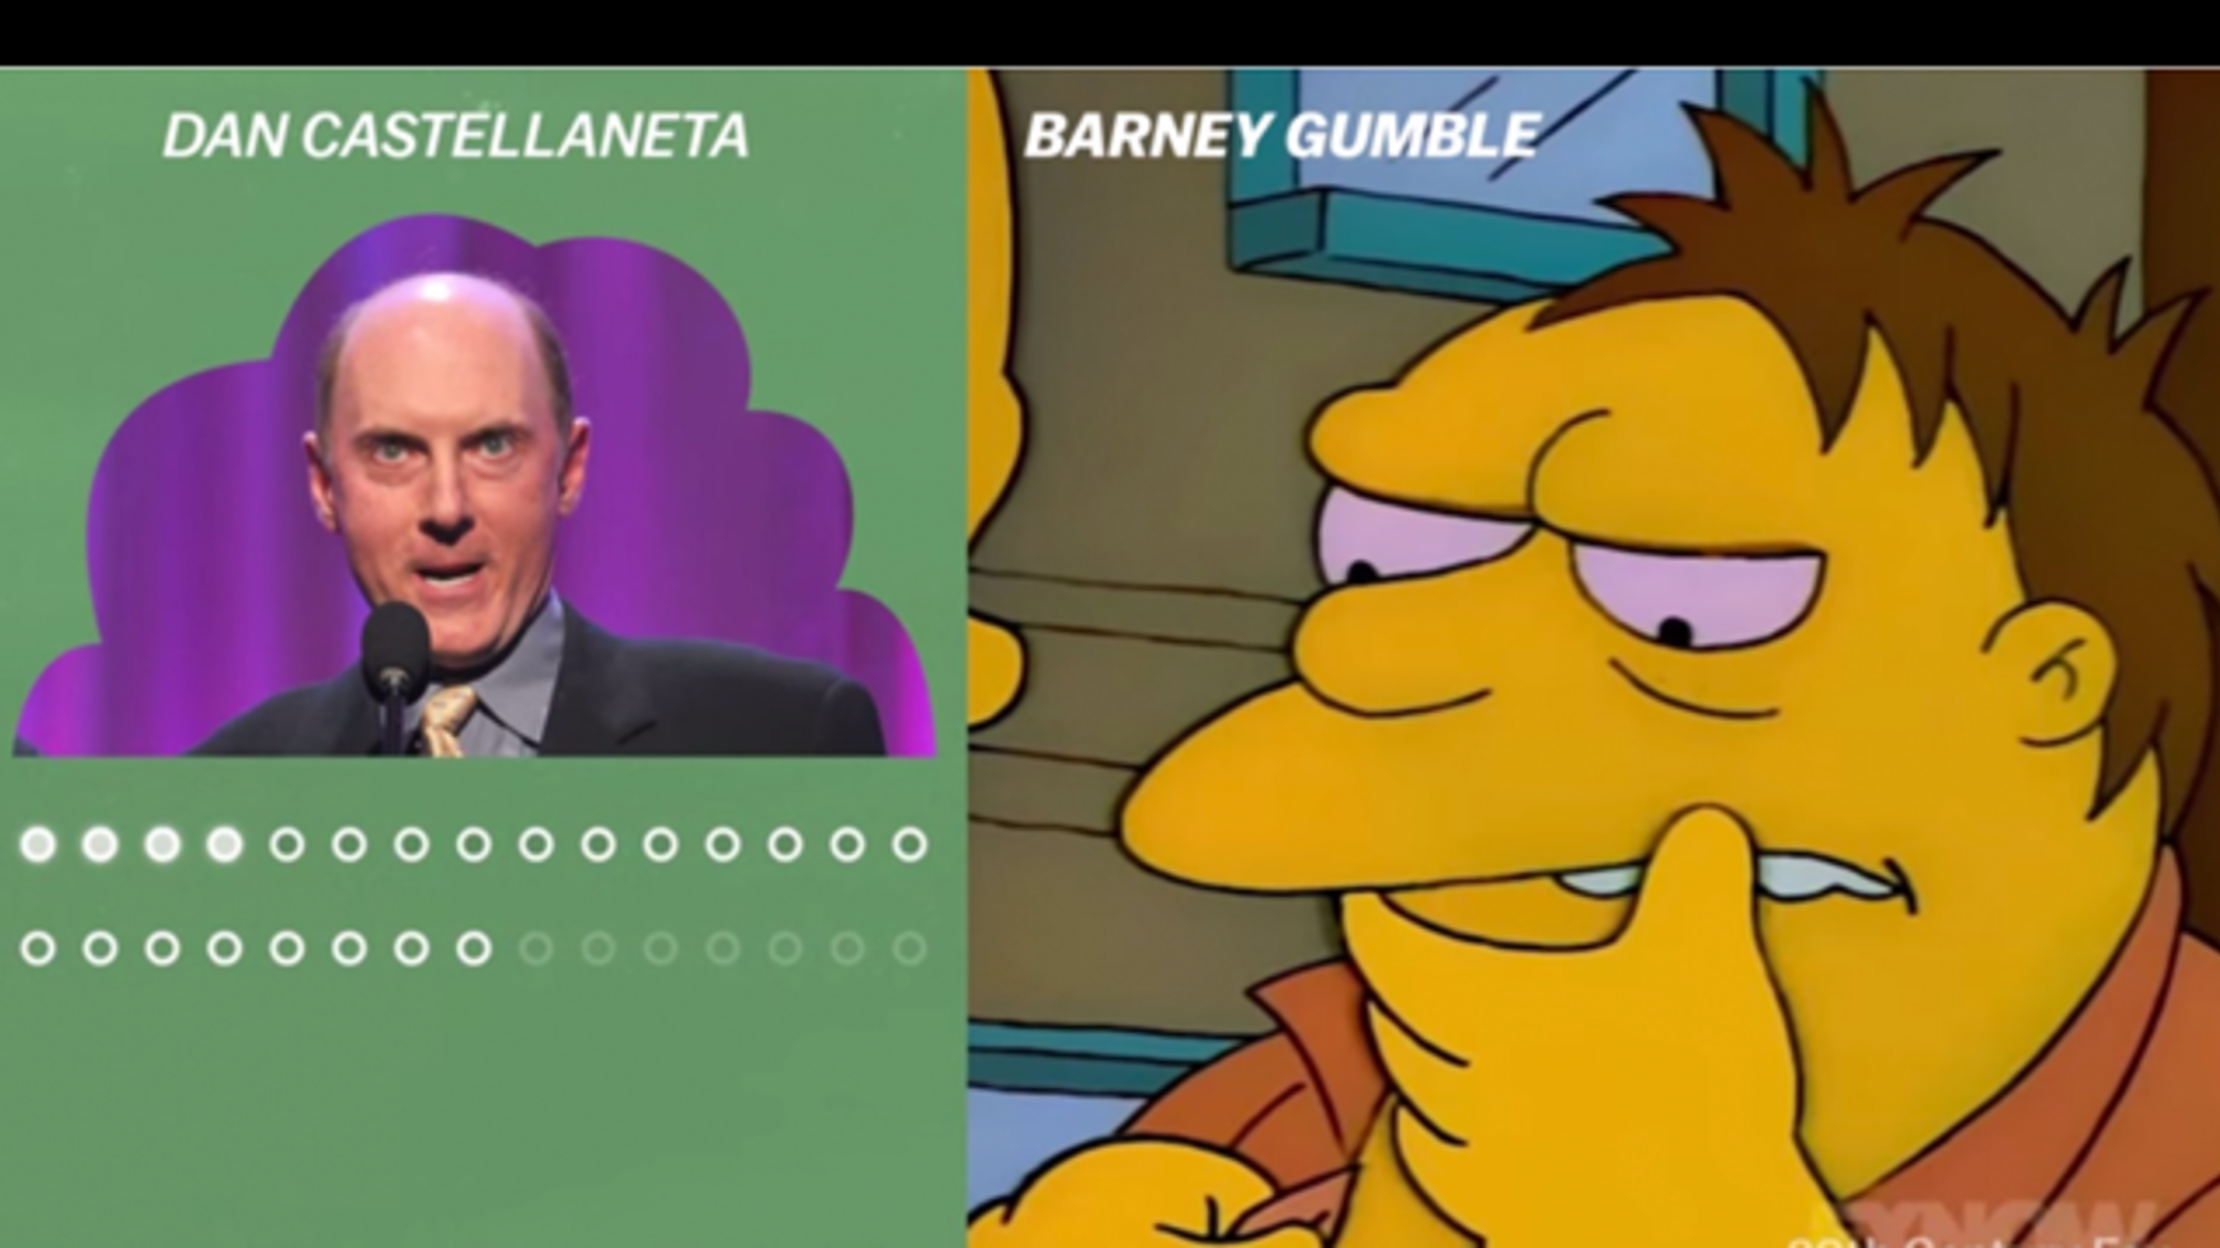 The 11 Actors Who Voice Over 100 'Simpsons' Characters | Mental Floss